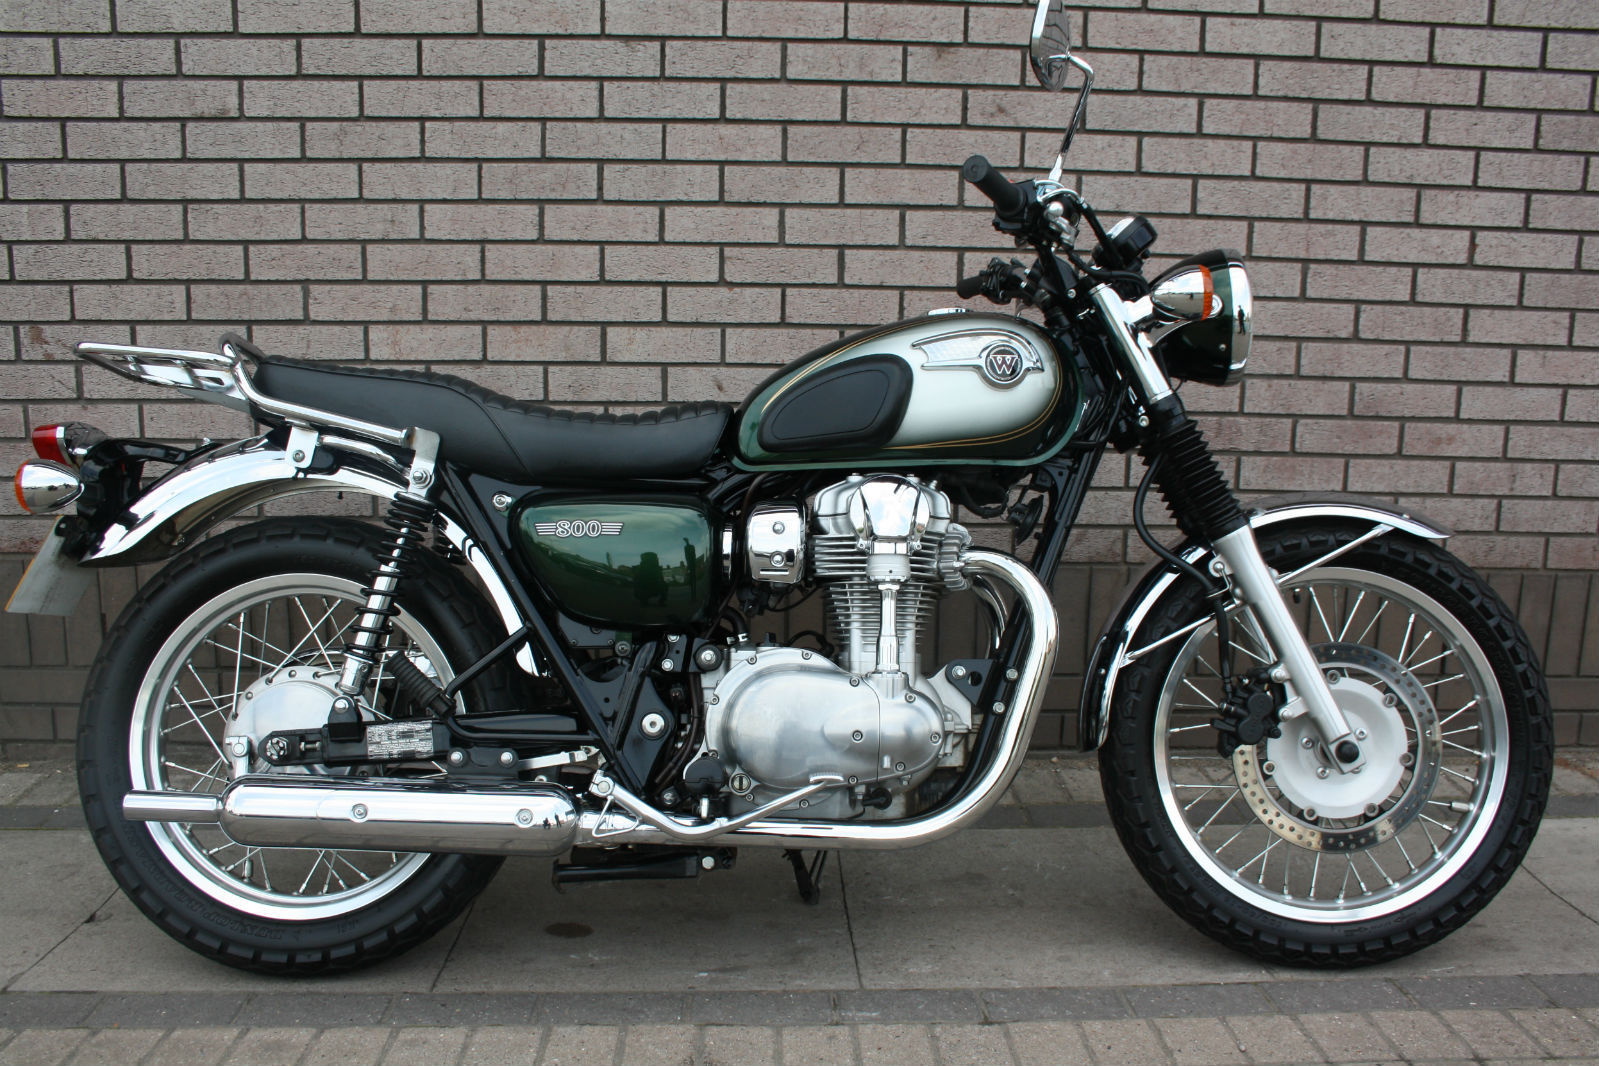 What A Beauty W800 From Kawasaki